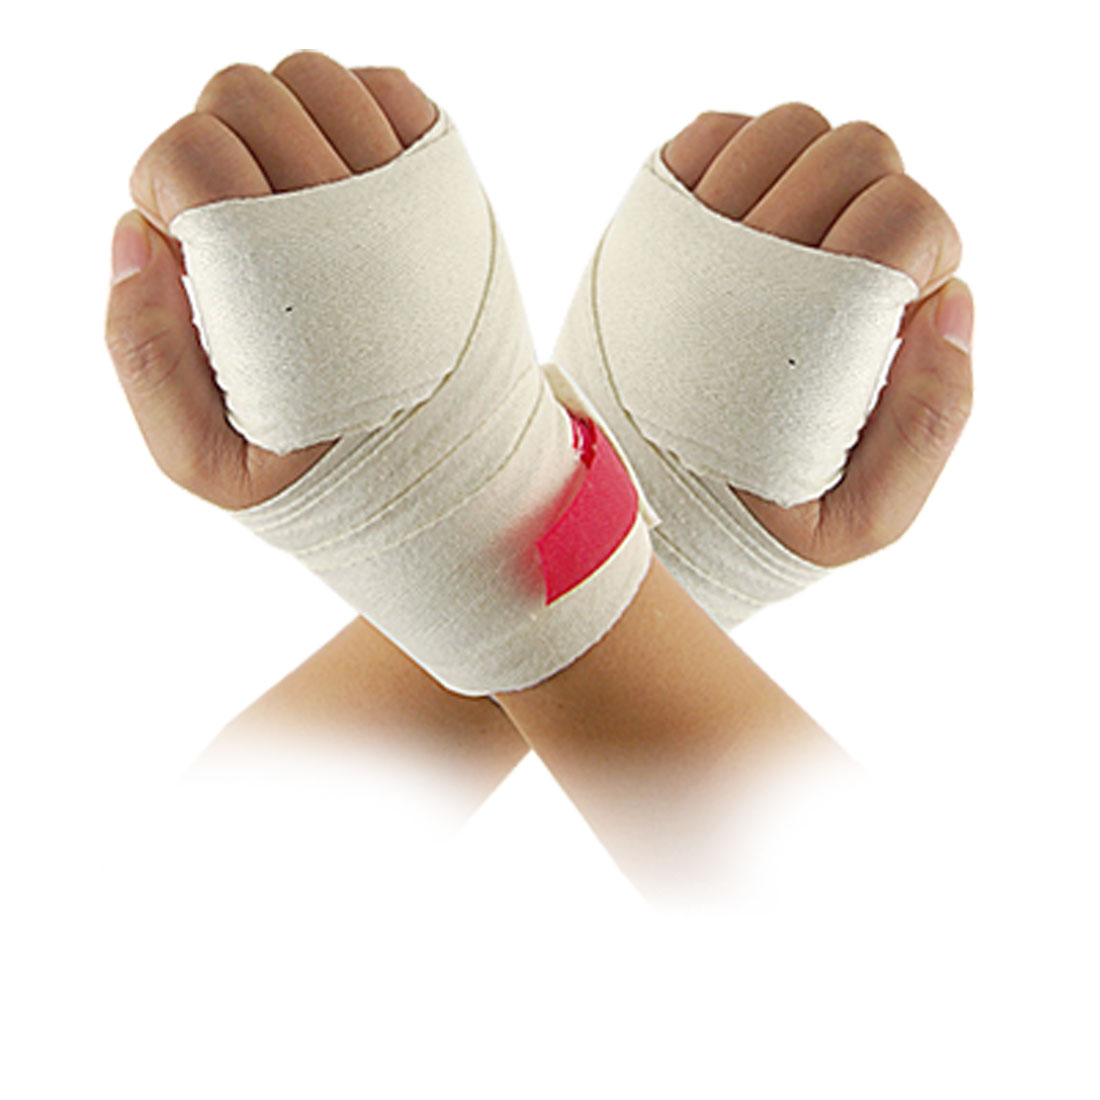 Boxing Taekwondo Off White Textured Hand Wraps Protector 2 Pcs